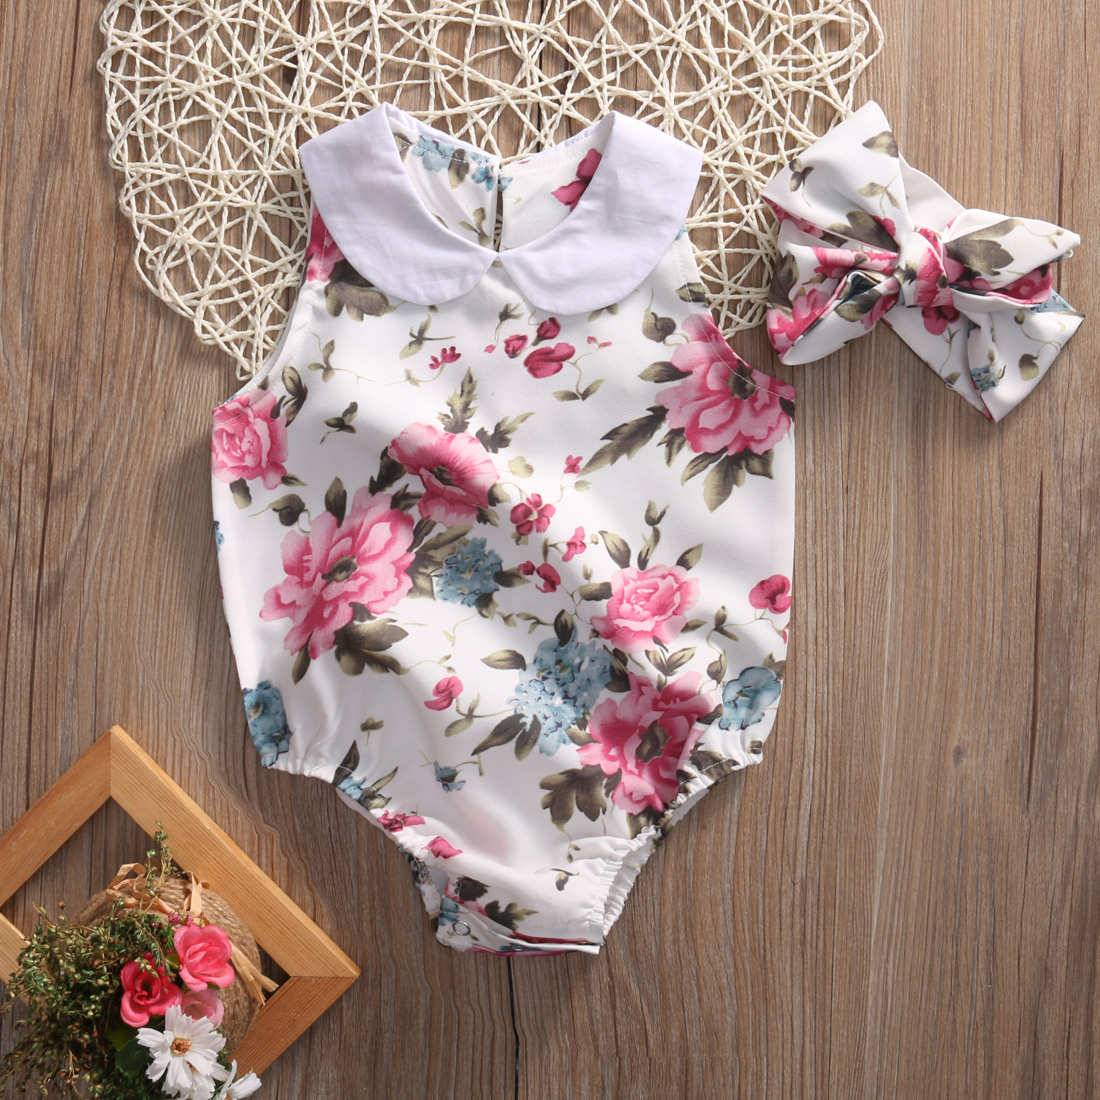 2pcs !! Summer Floral Newborn Infant Baby Girl Clothes Sleevleess Flower Romper Jumpsuit+Headband Baby Outfits Sunsuit Clothes newborn baby girl kids sleeveless tassel romper jumpsuit summer baby clothes cotton baby girl romper sunsuit outfits